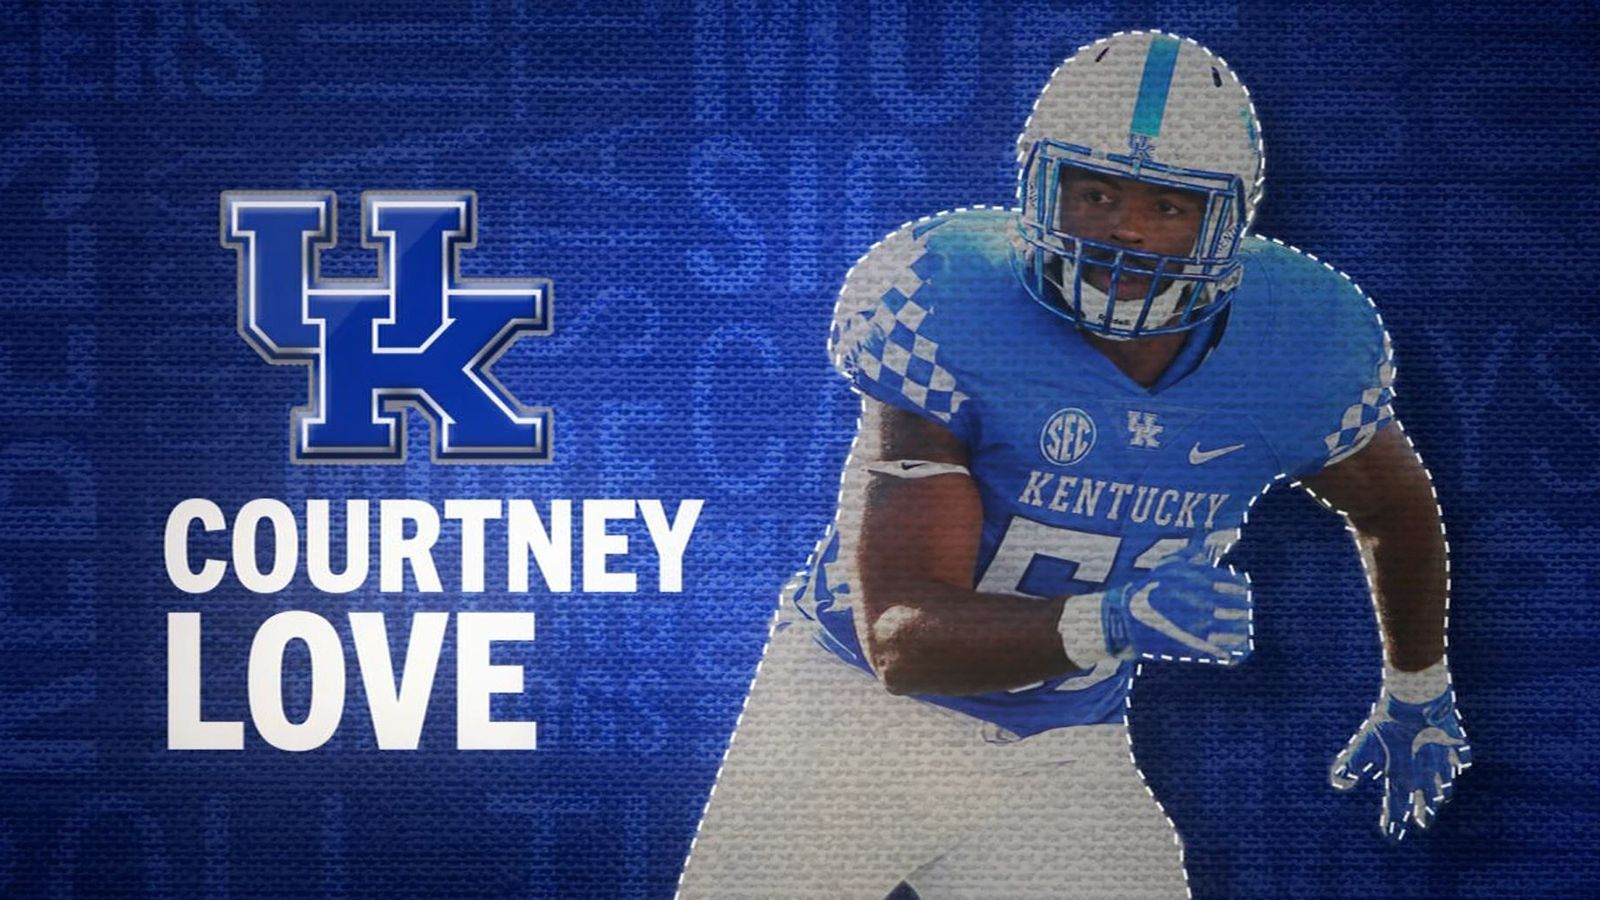 I am the SEC: Kentucky's Courtney Love